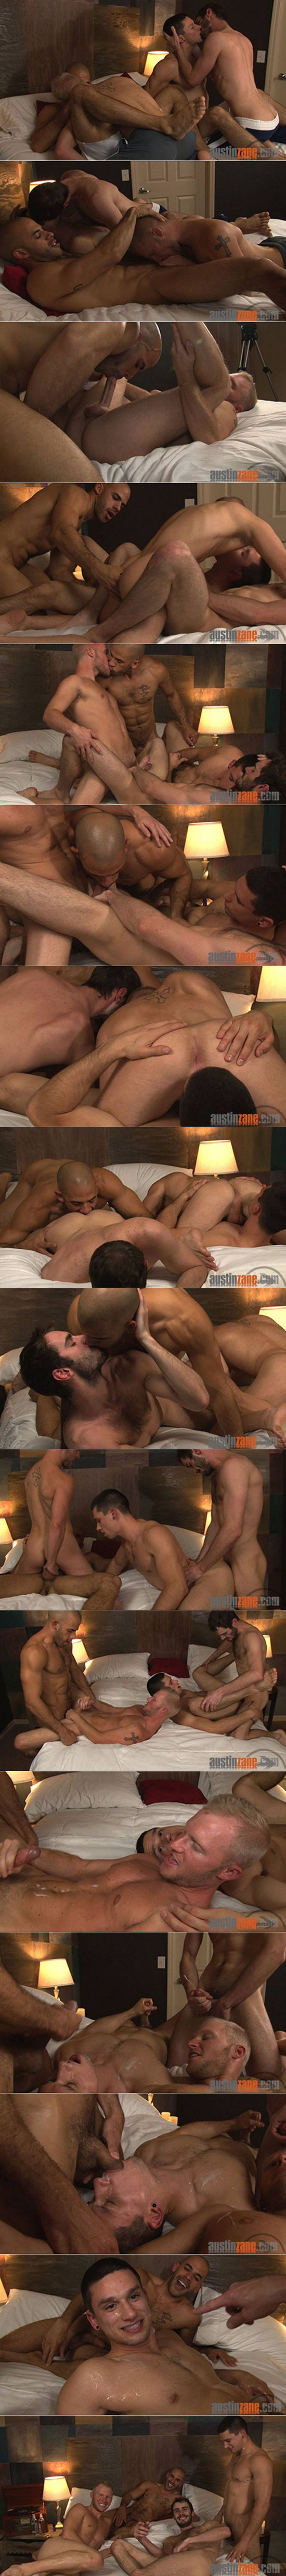 Anthony Romero and Austin Wilde show up at AustinZane.com